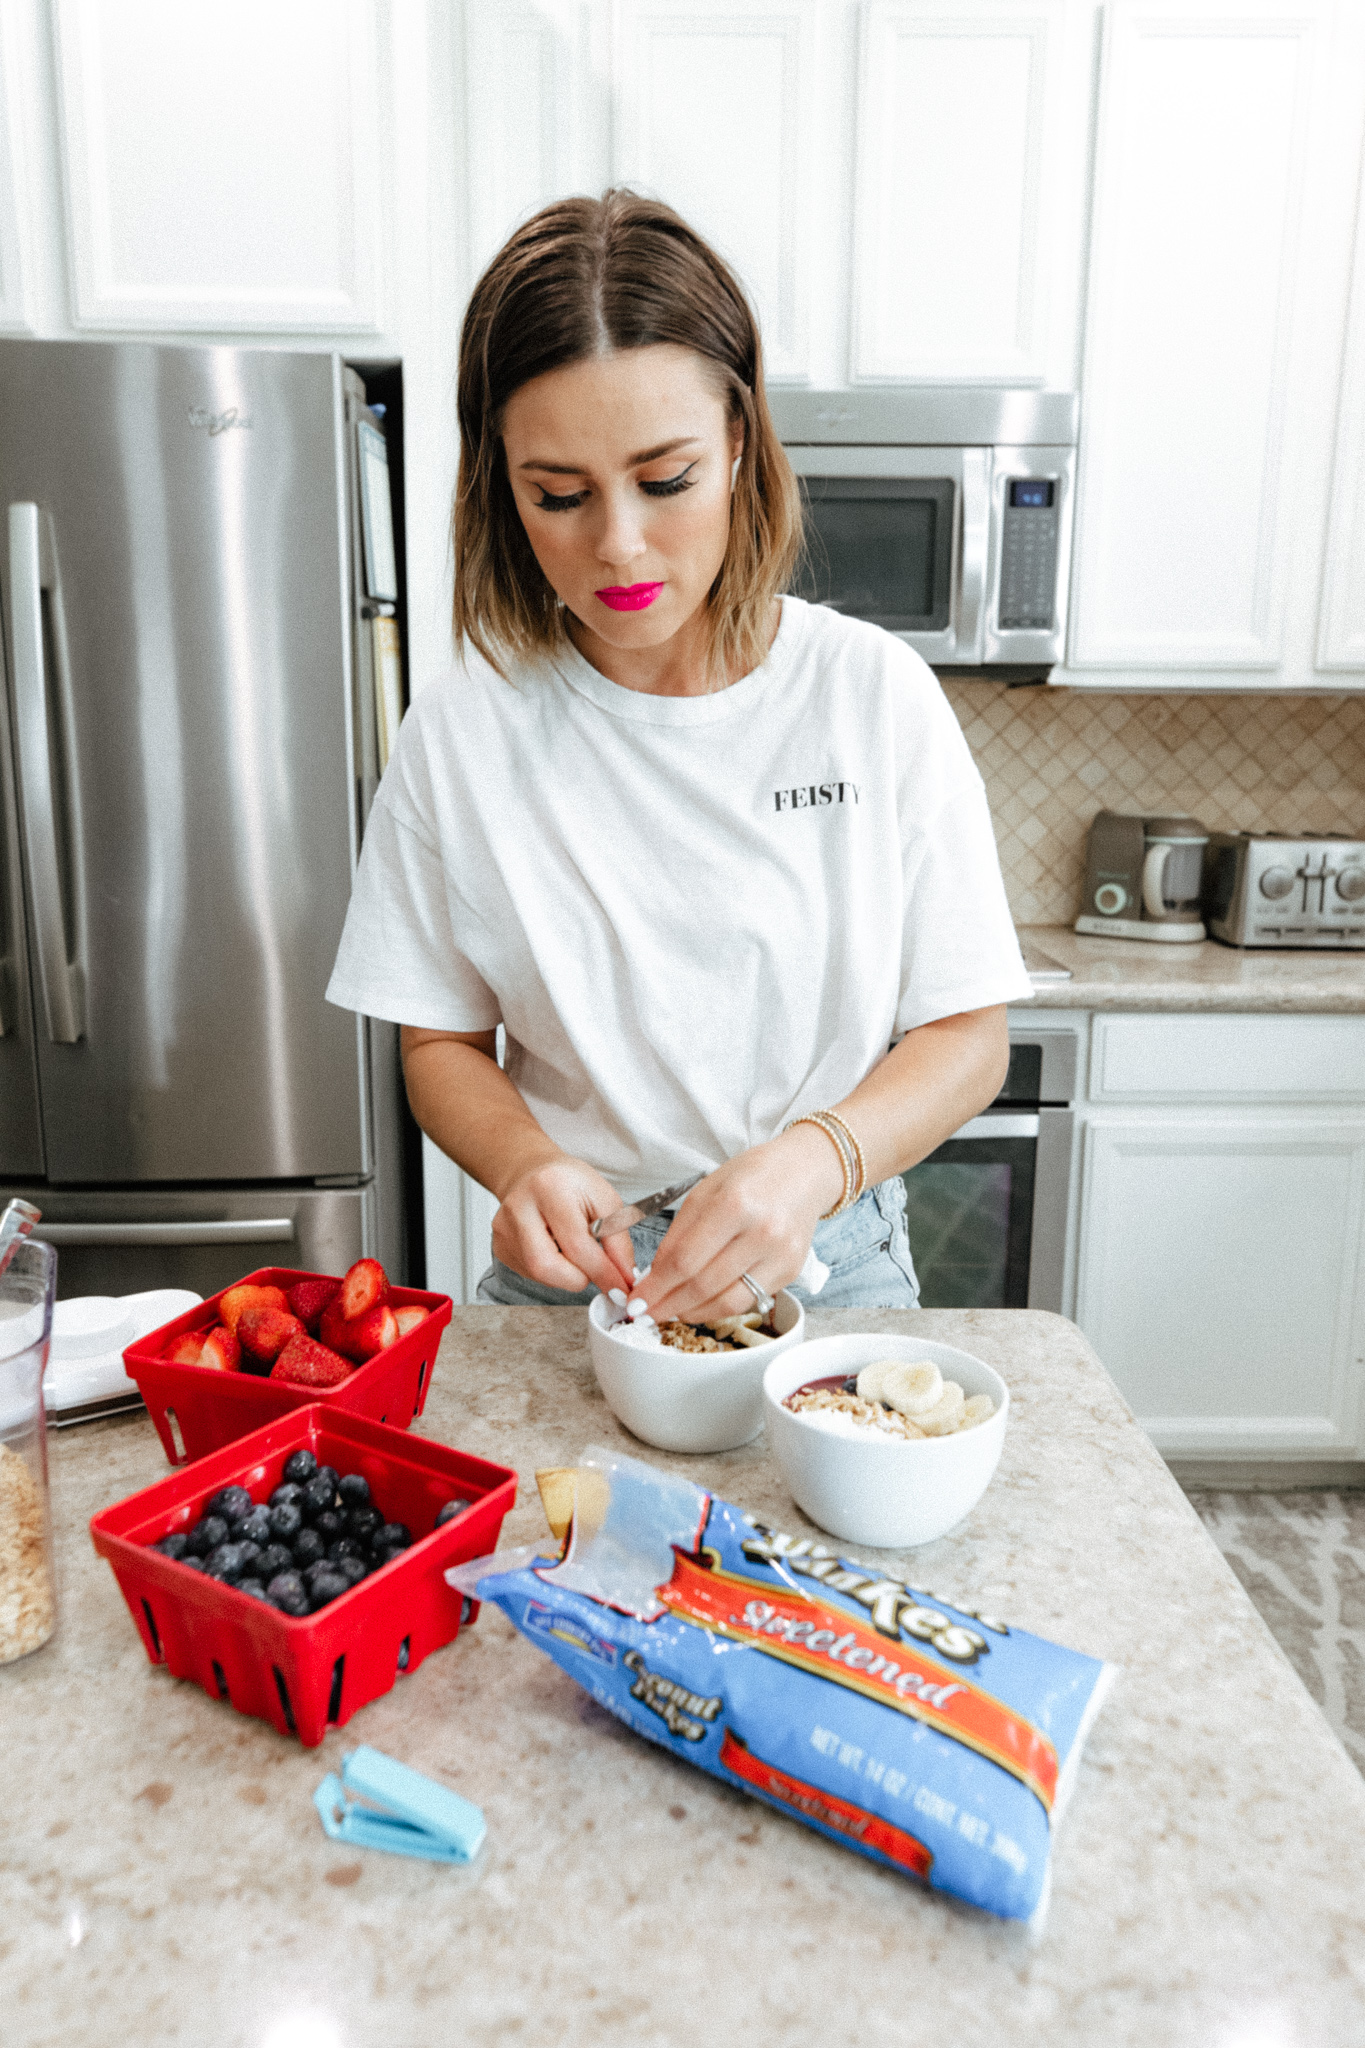 Looking for a SUPER Easy and Simple Acai Bowl Recipe? Blogger Elly Brown shares how she makes the yummiest acai bowl and how you can too!